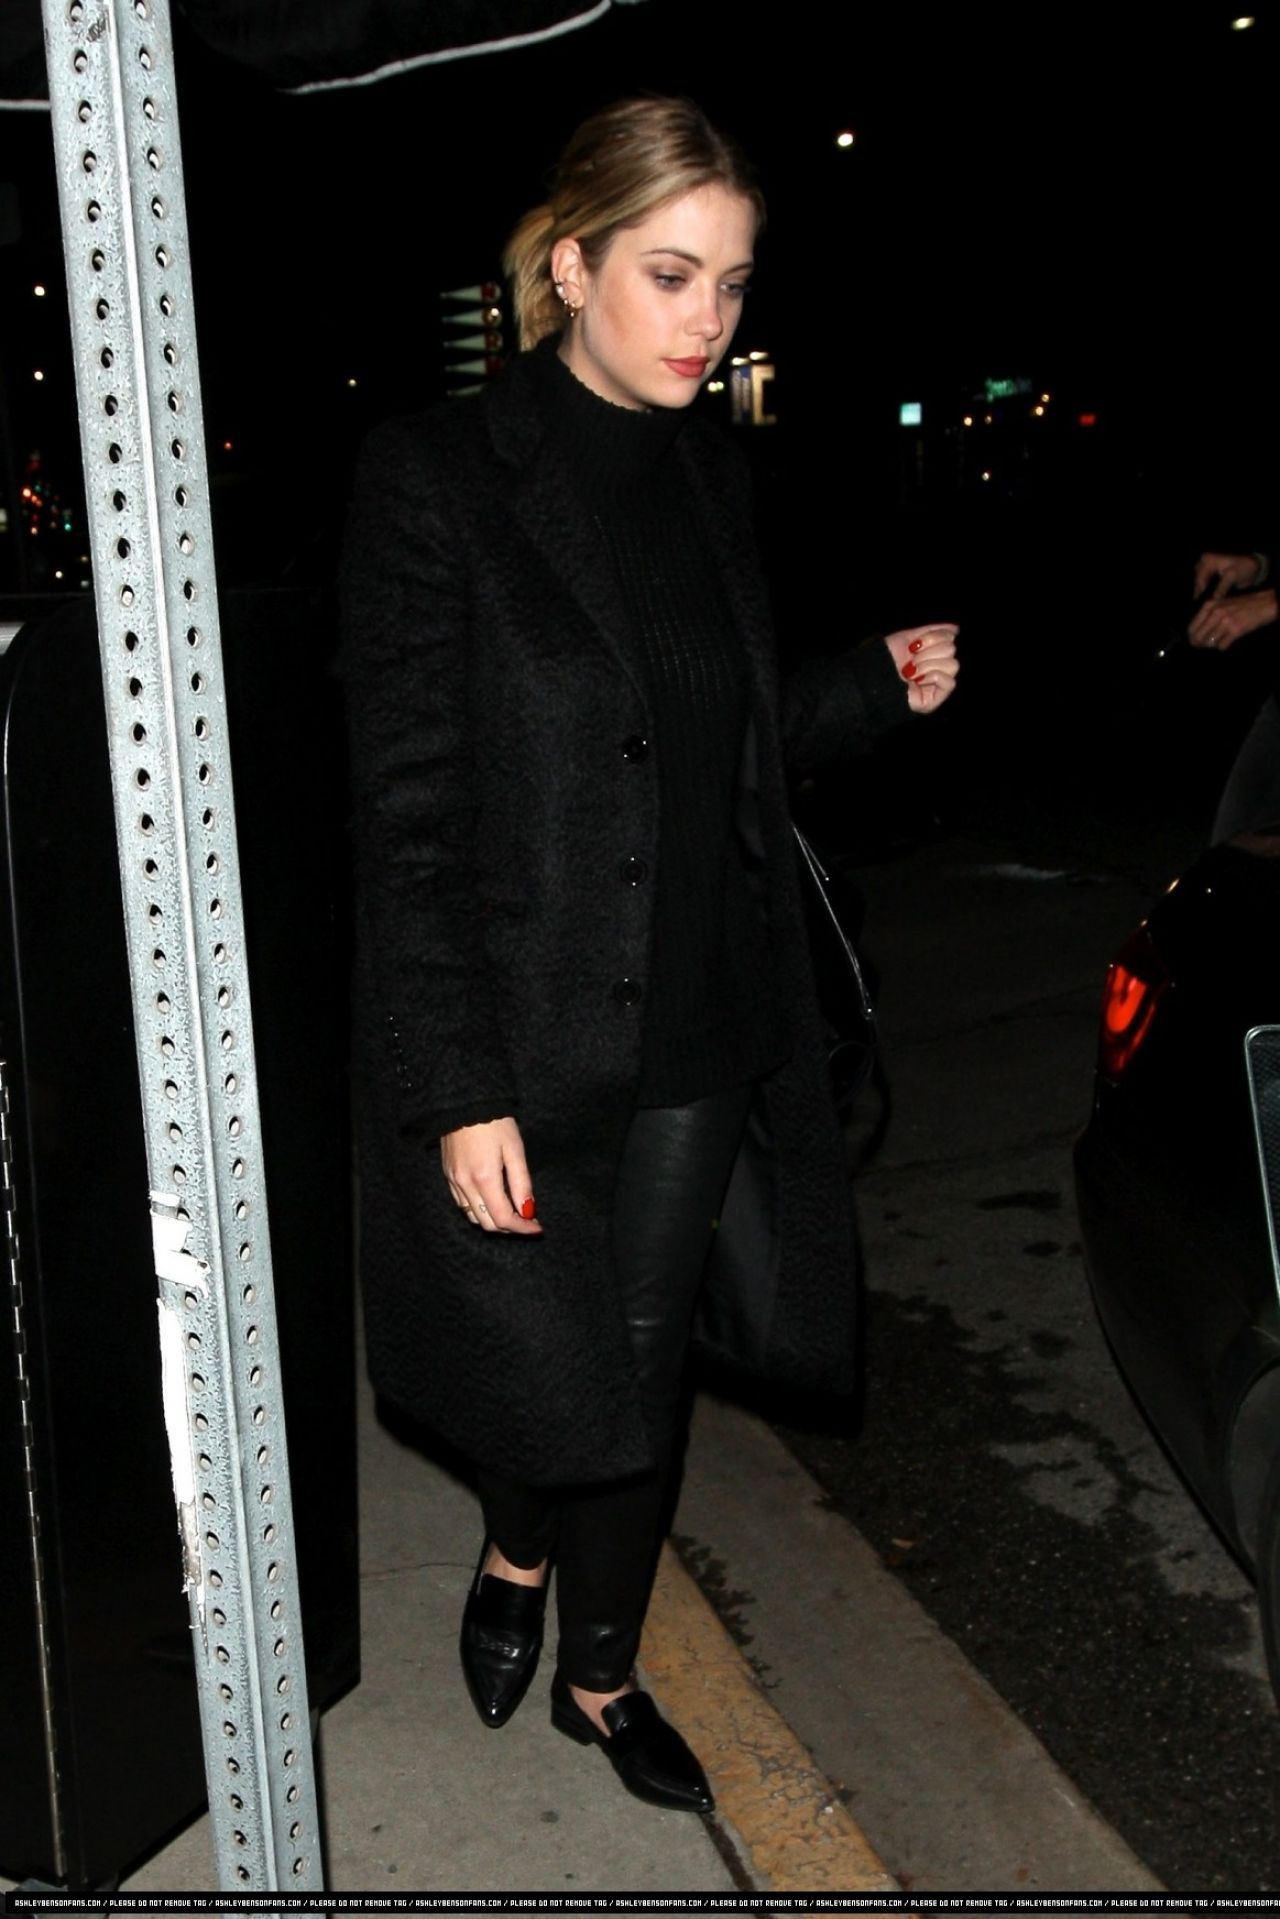 Ashley Benson leaving a nightclub in West Hollywood